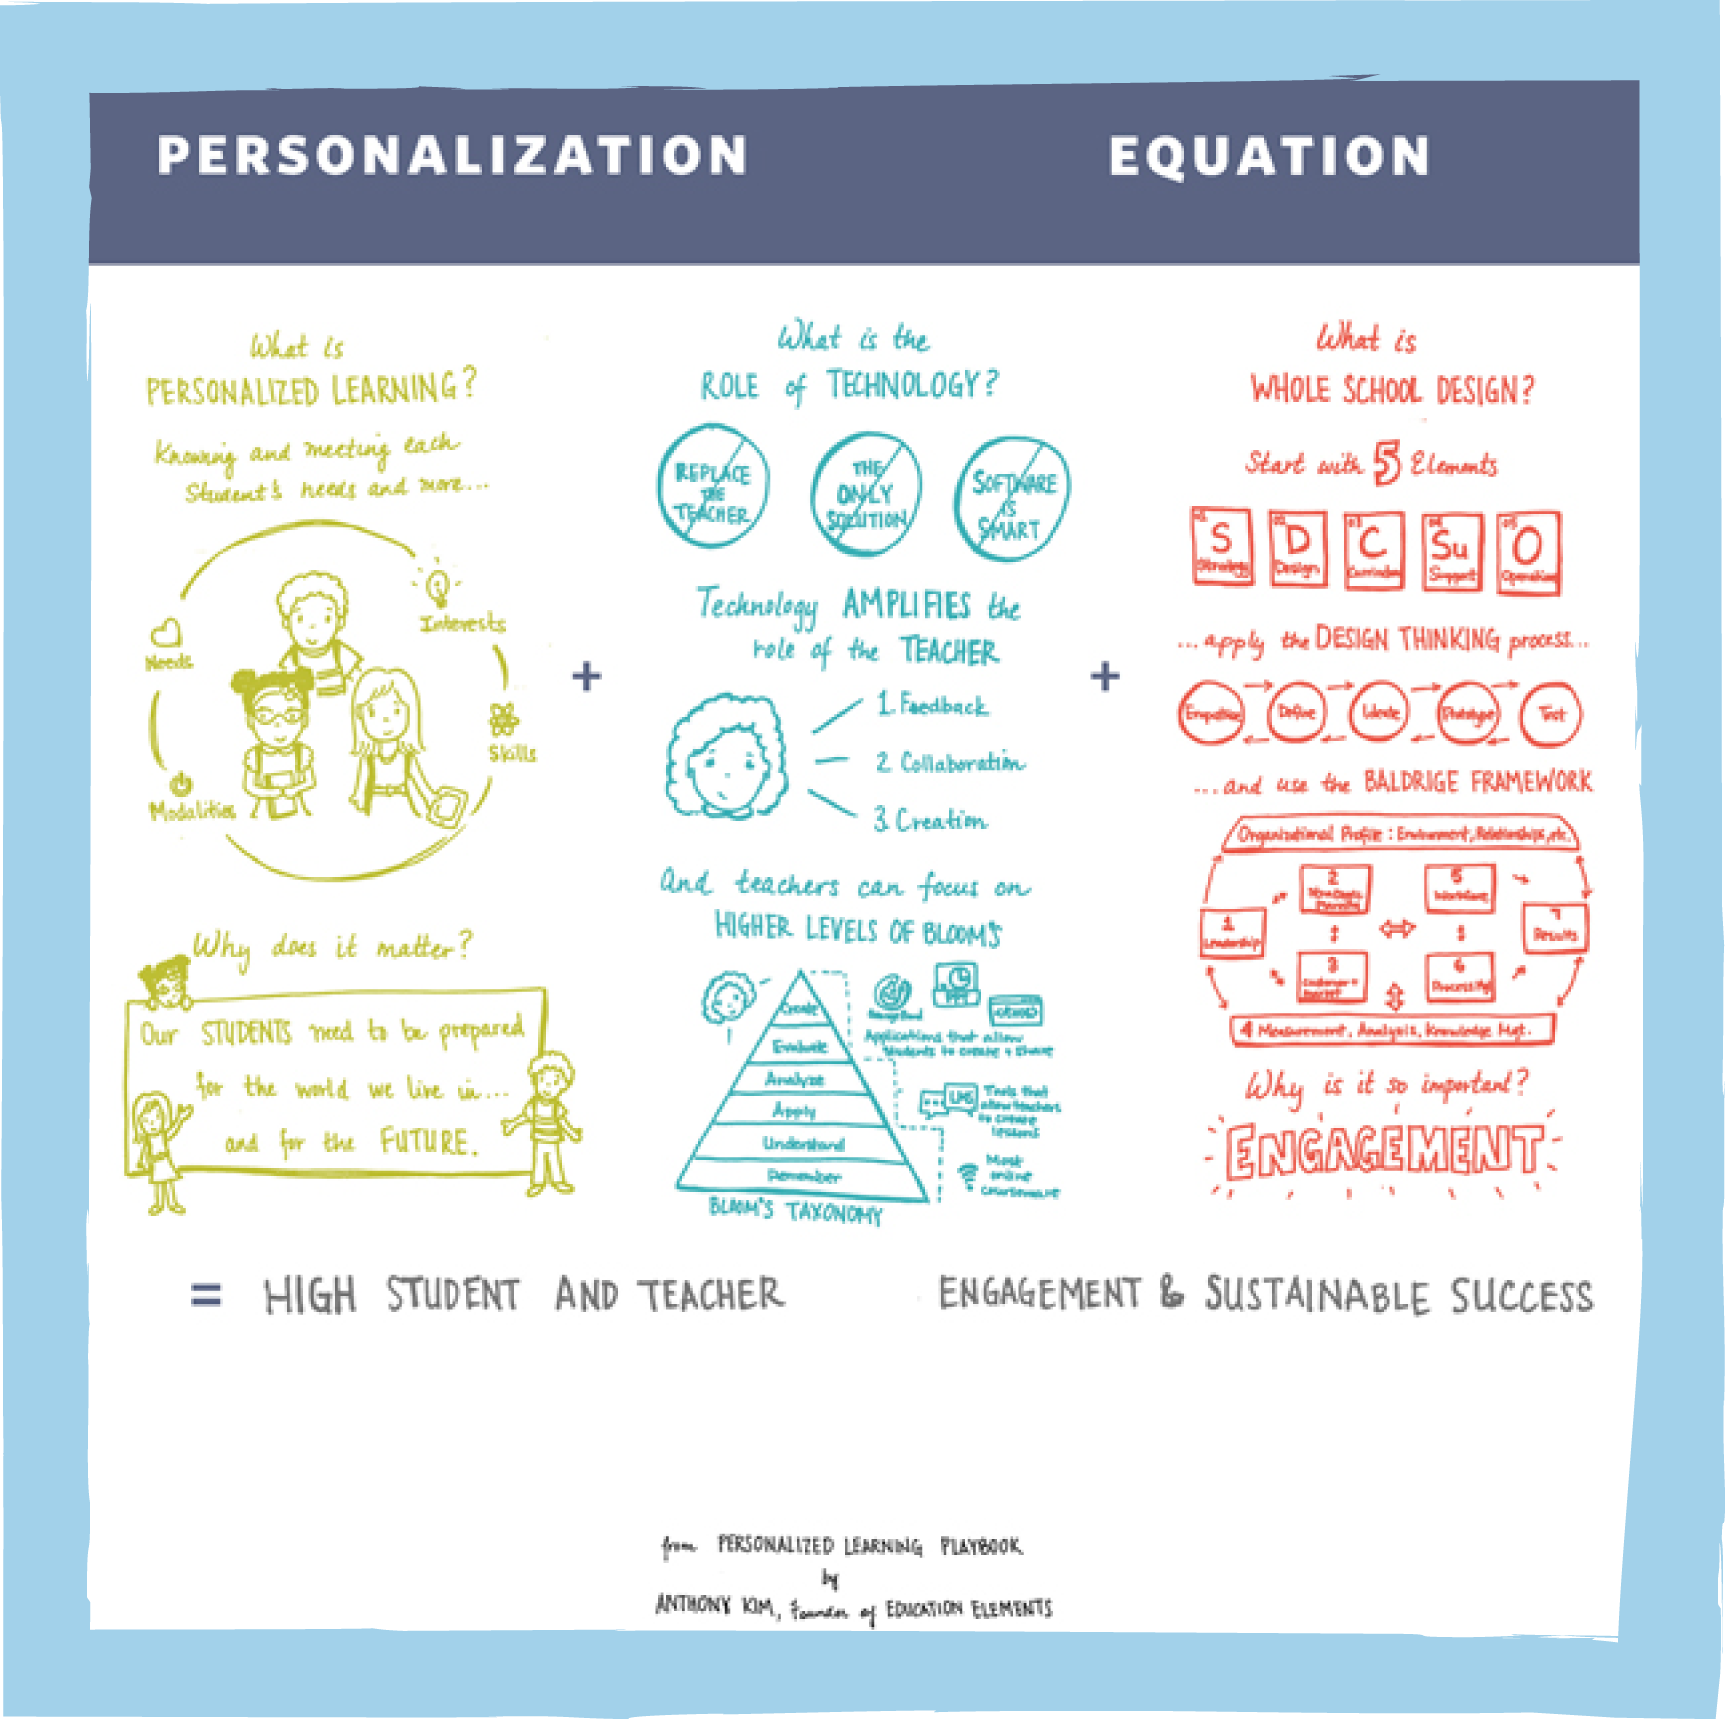 The Personalization Equation